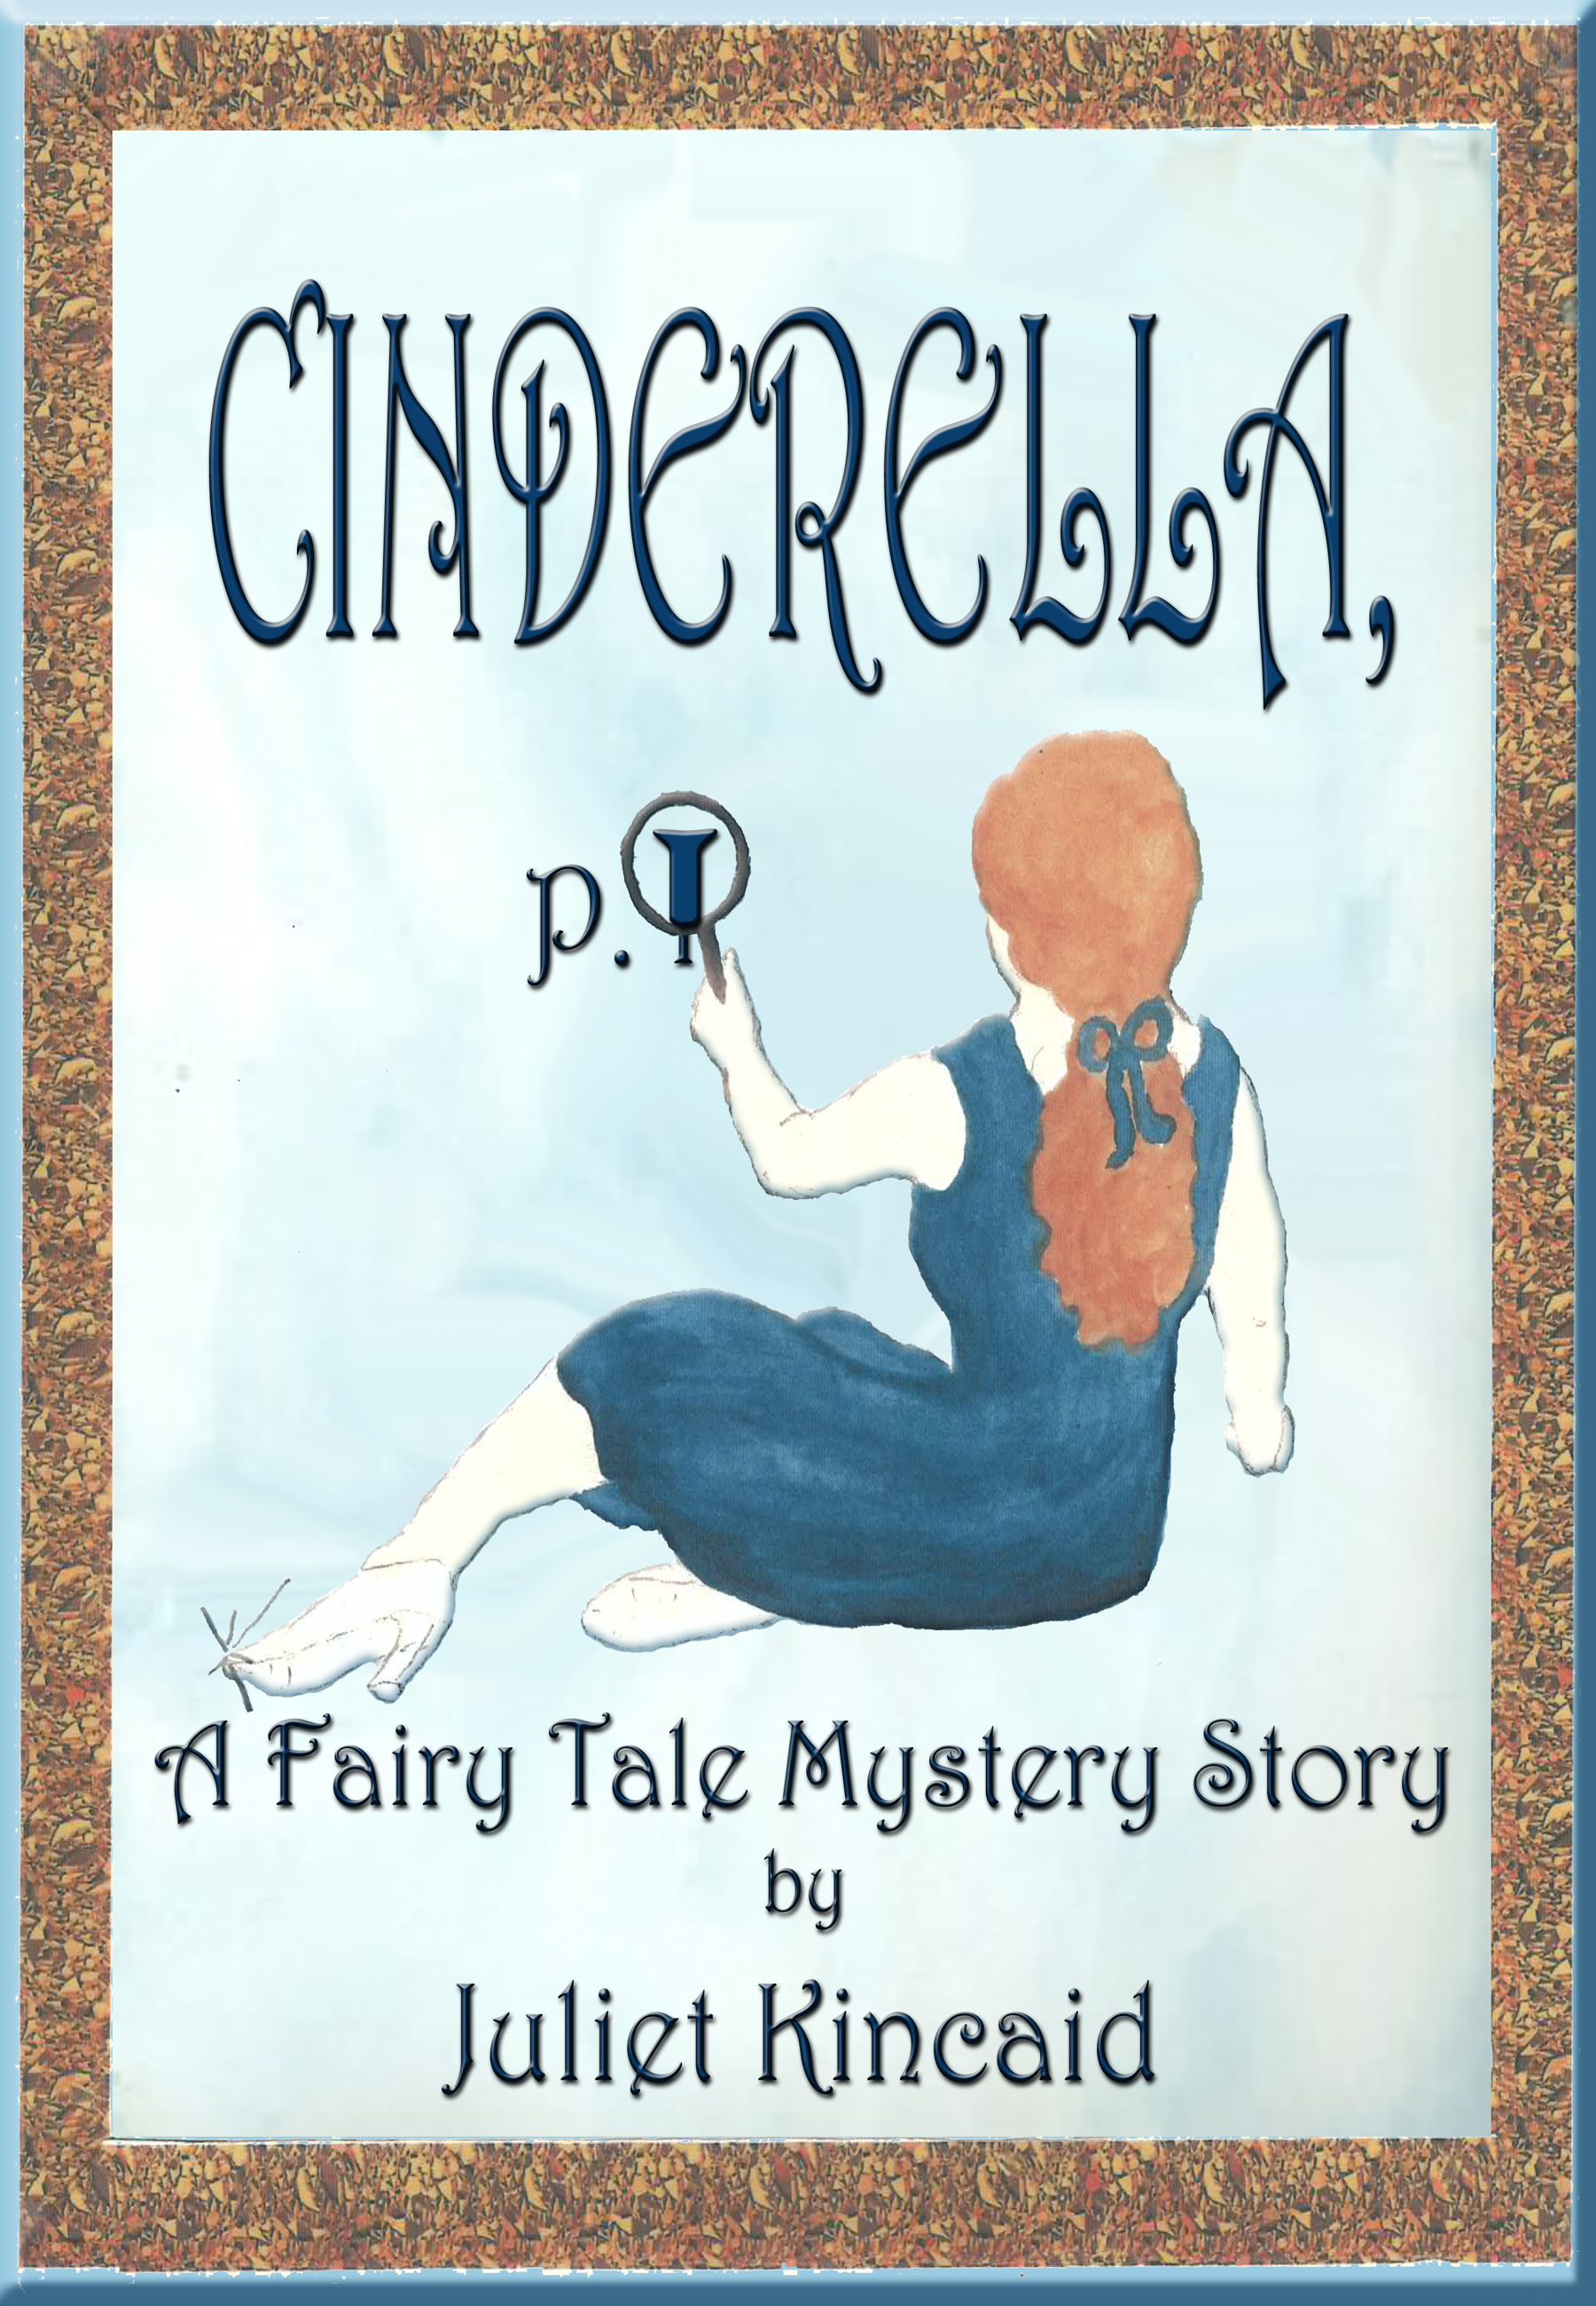 Cinderella PI Kindle Cover 2-4-2013b